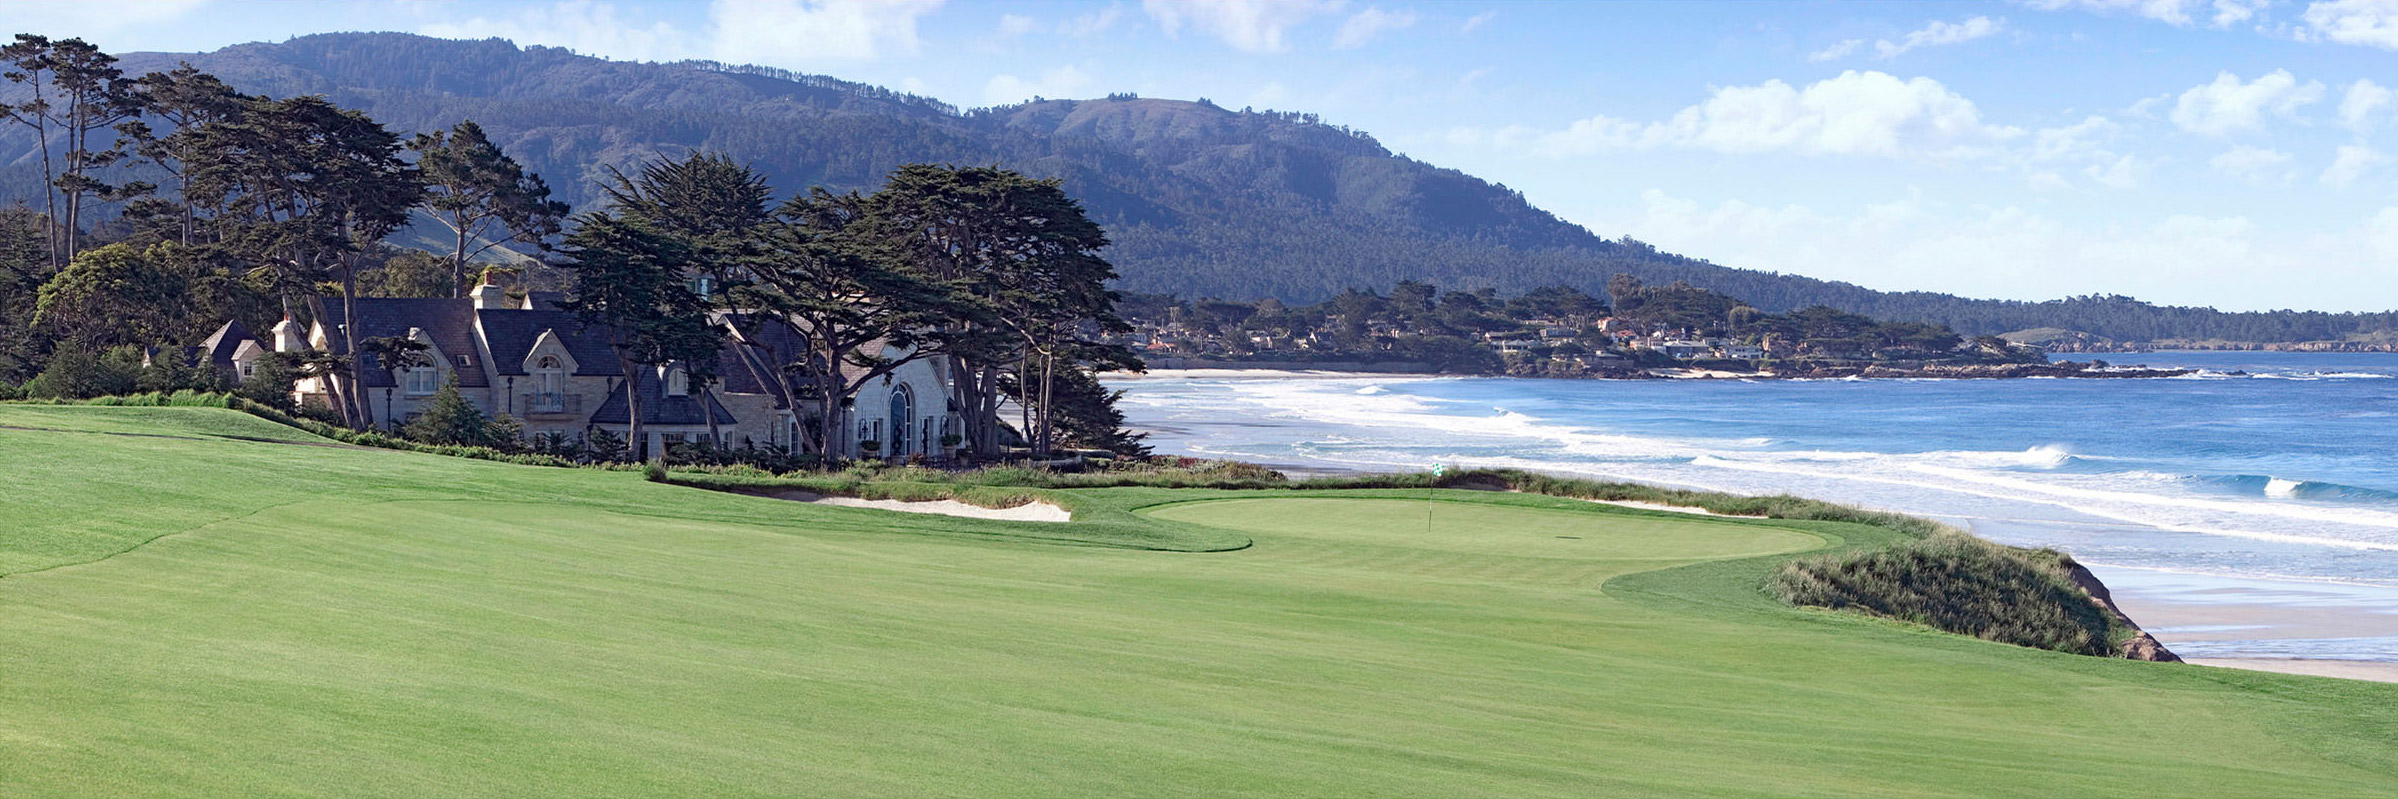 Golf Course Image - Pebble Beach No. 10